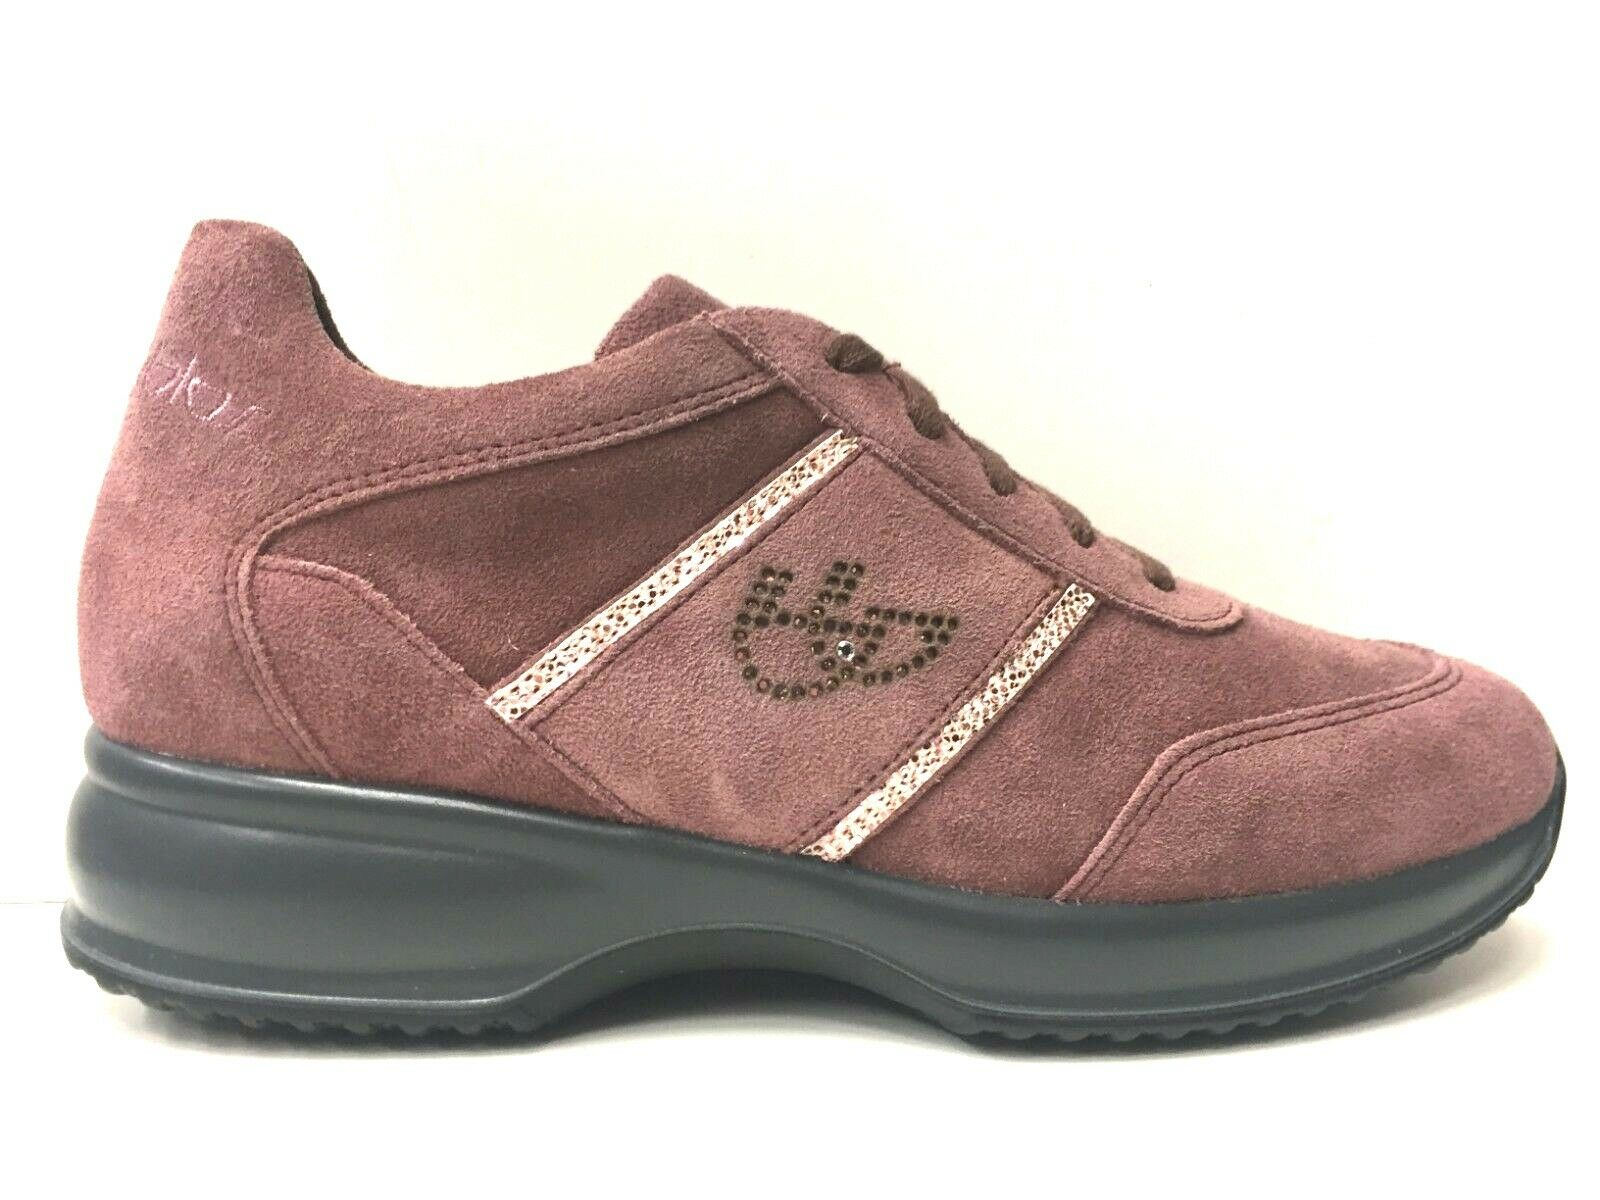 SCARPE SNEAKERS CASUAL DONNA BYBLOS ORIGINALE 695791 PELLE SHOES ROSA A/I NEW